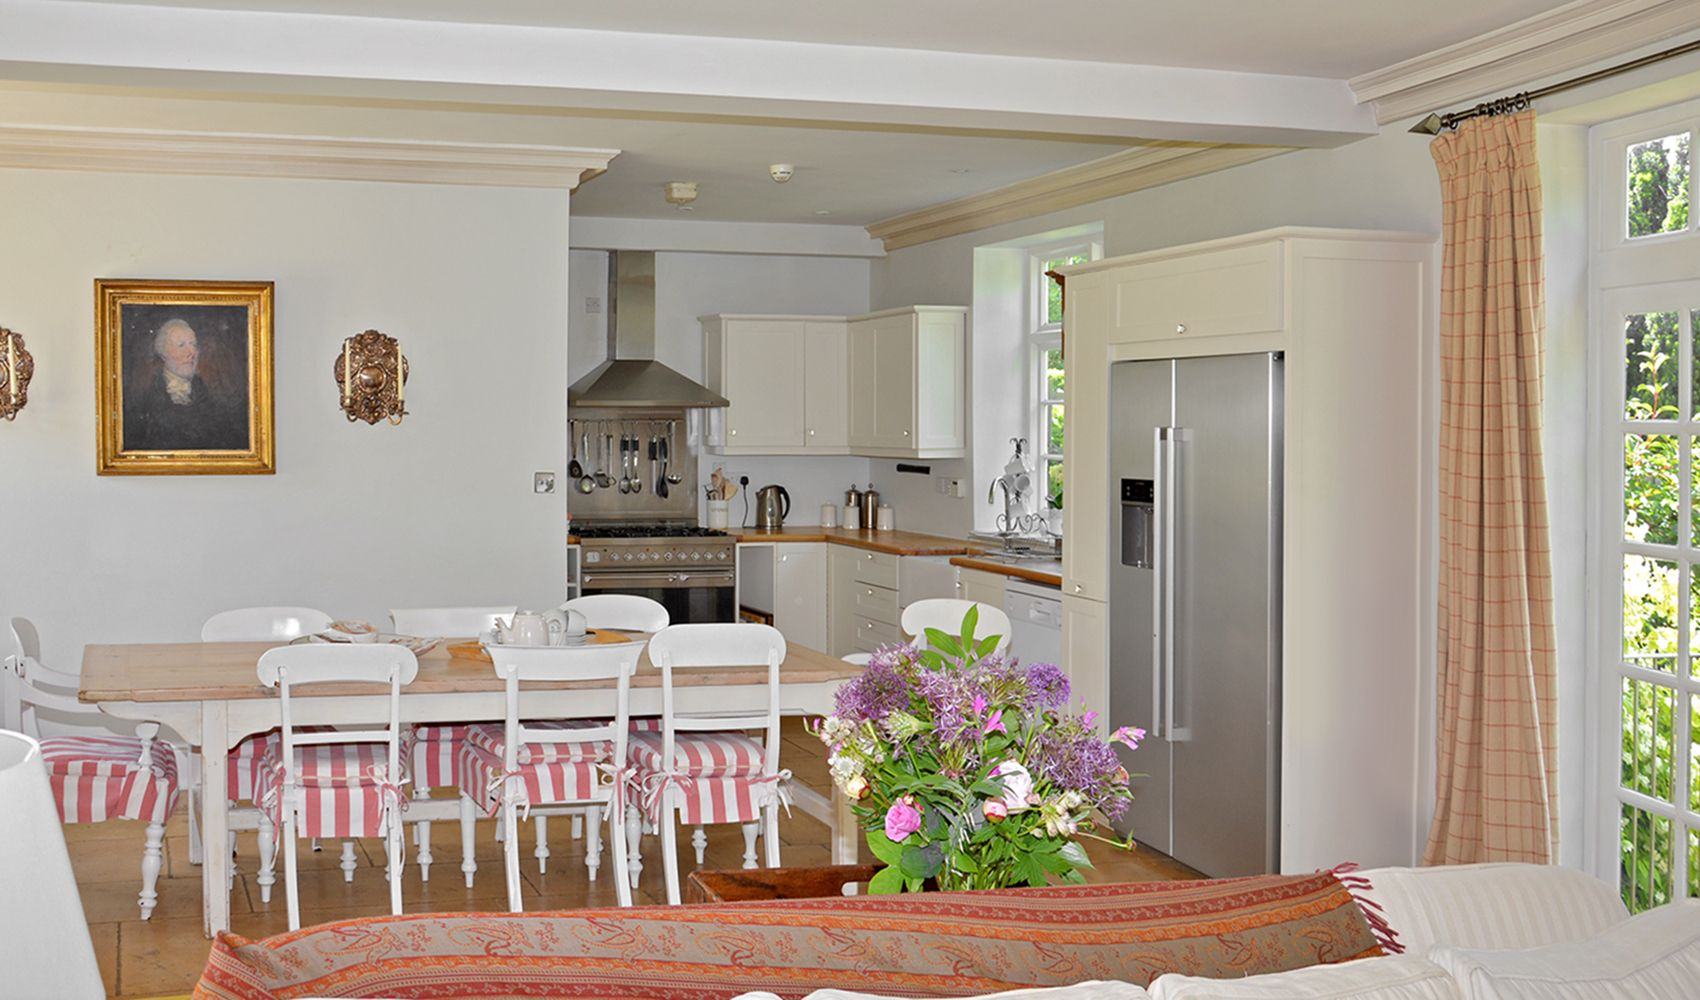 Ground floor: Dining area & kitchen from the drawing room